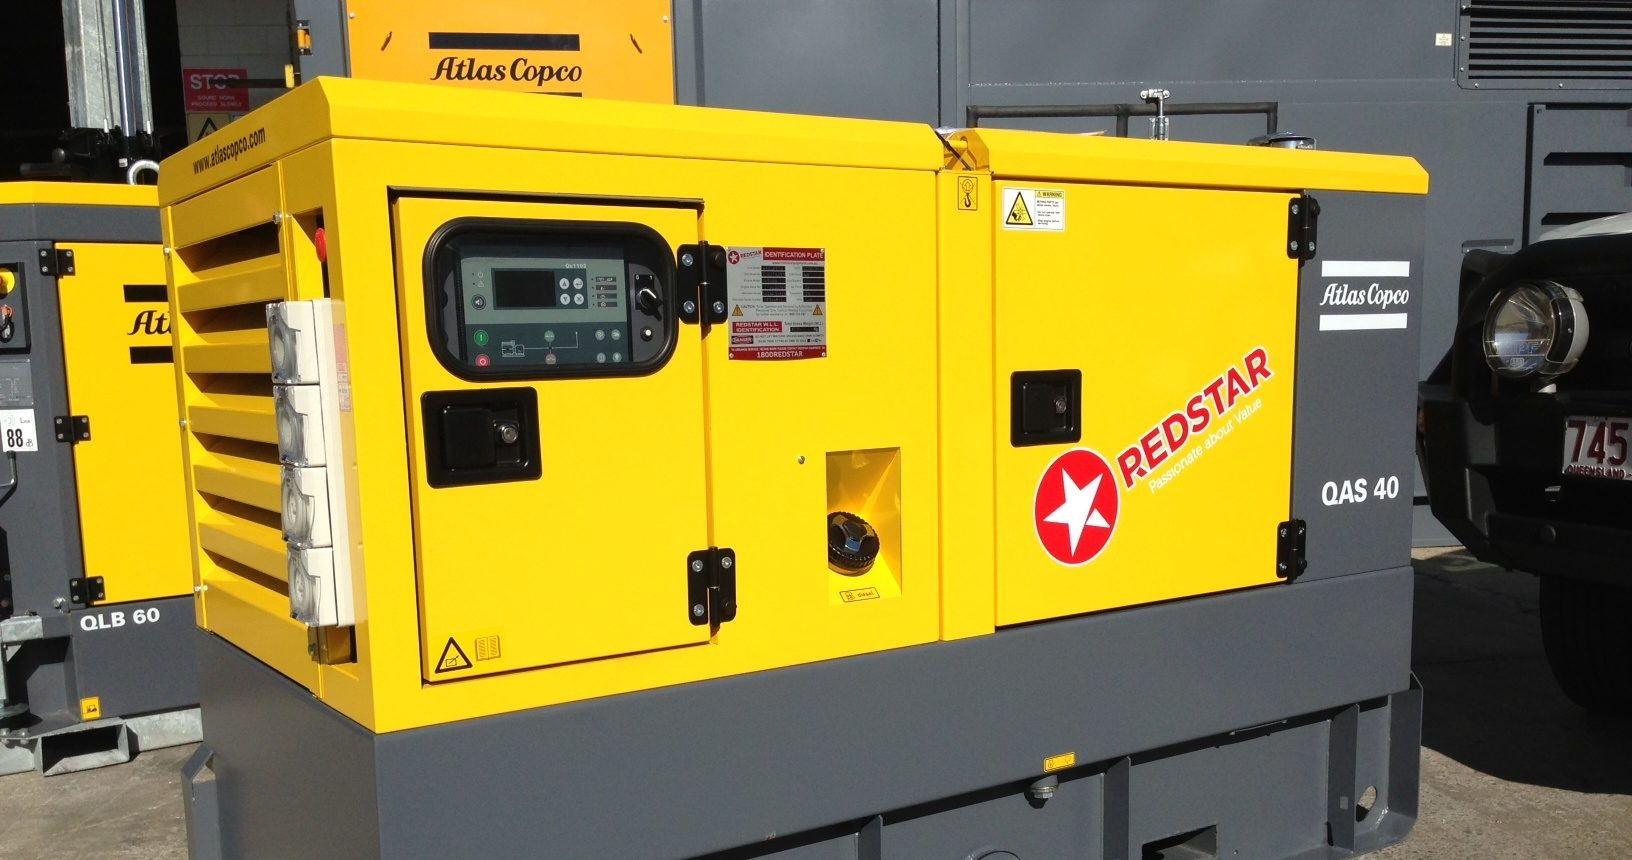 Atlast Copco Reaches More Customers with Redstar Equipment